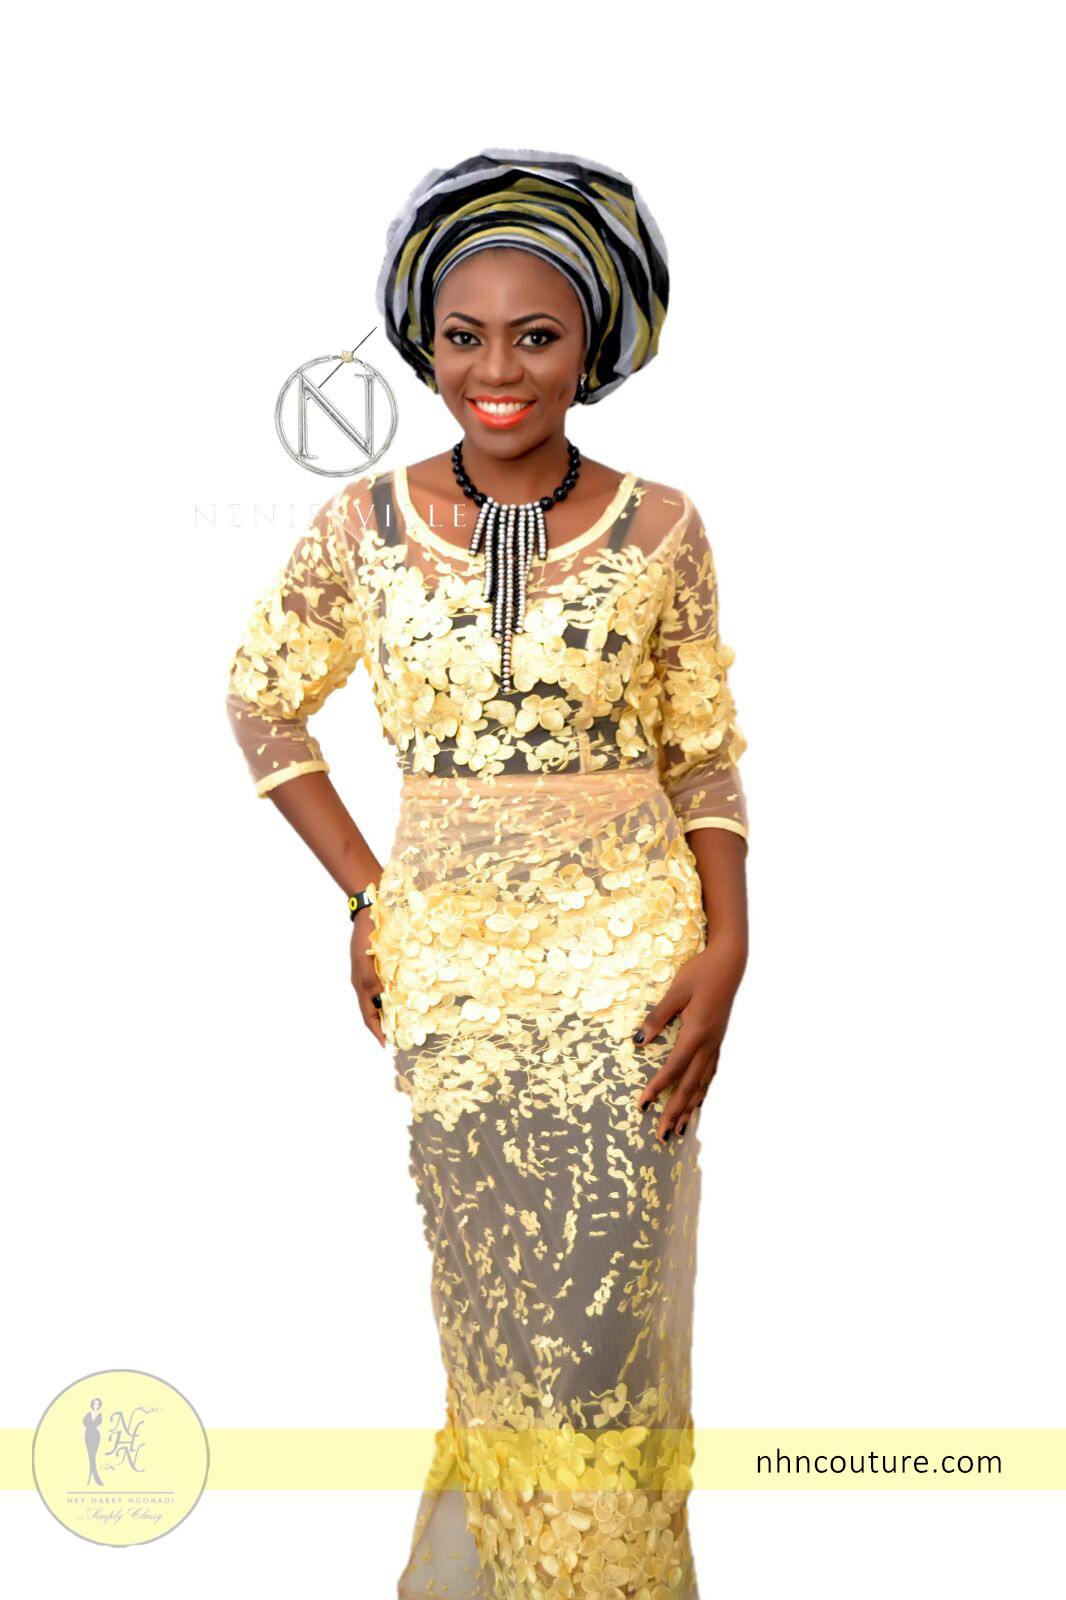 Neniesville-Jewelry_Nigerian-Attire-by-NHN-Couture_6